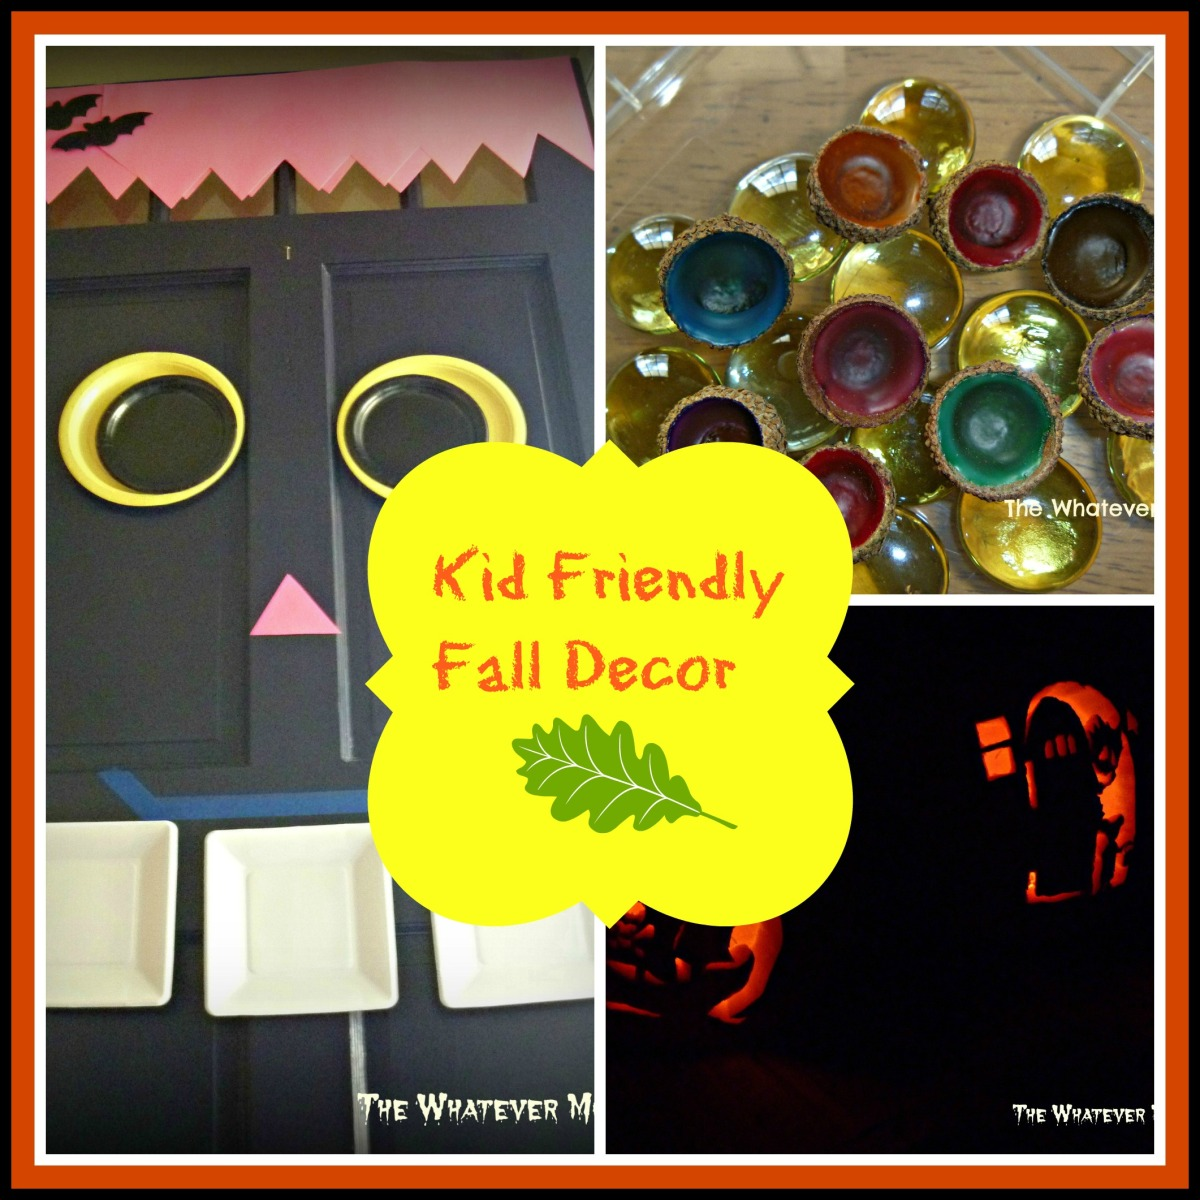 3 fun kid friendly decorations for fall halloween the whatever mom. Black Bedroom Furniture Sets. Home Design Ideas